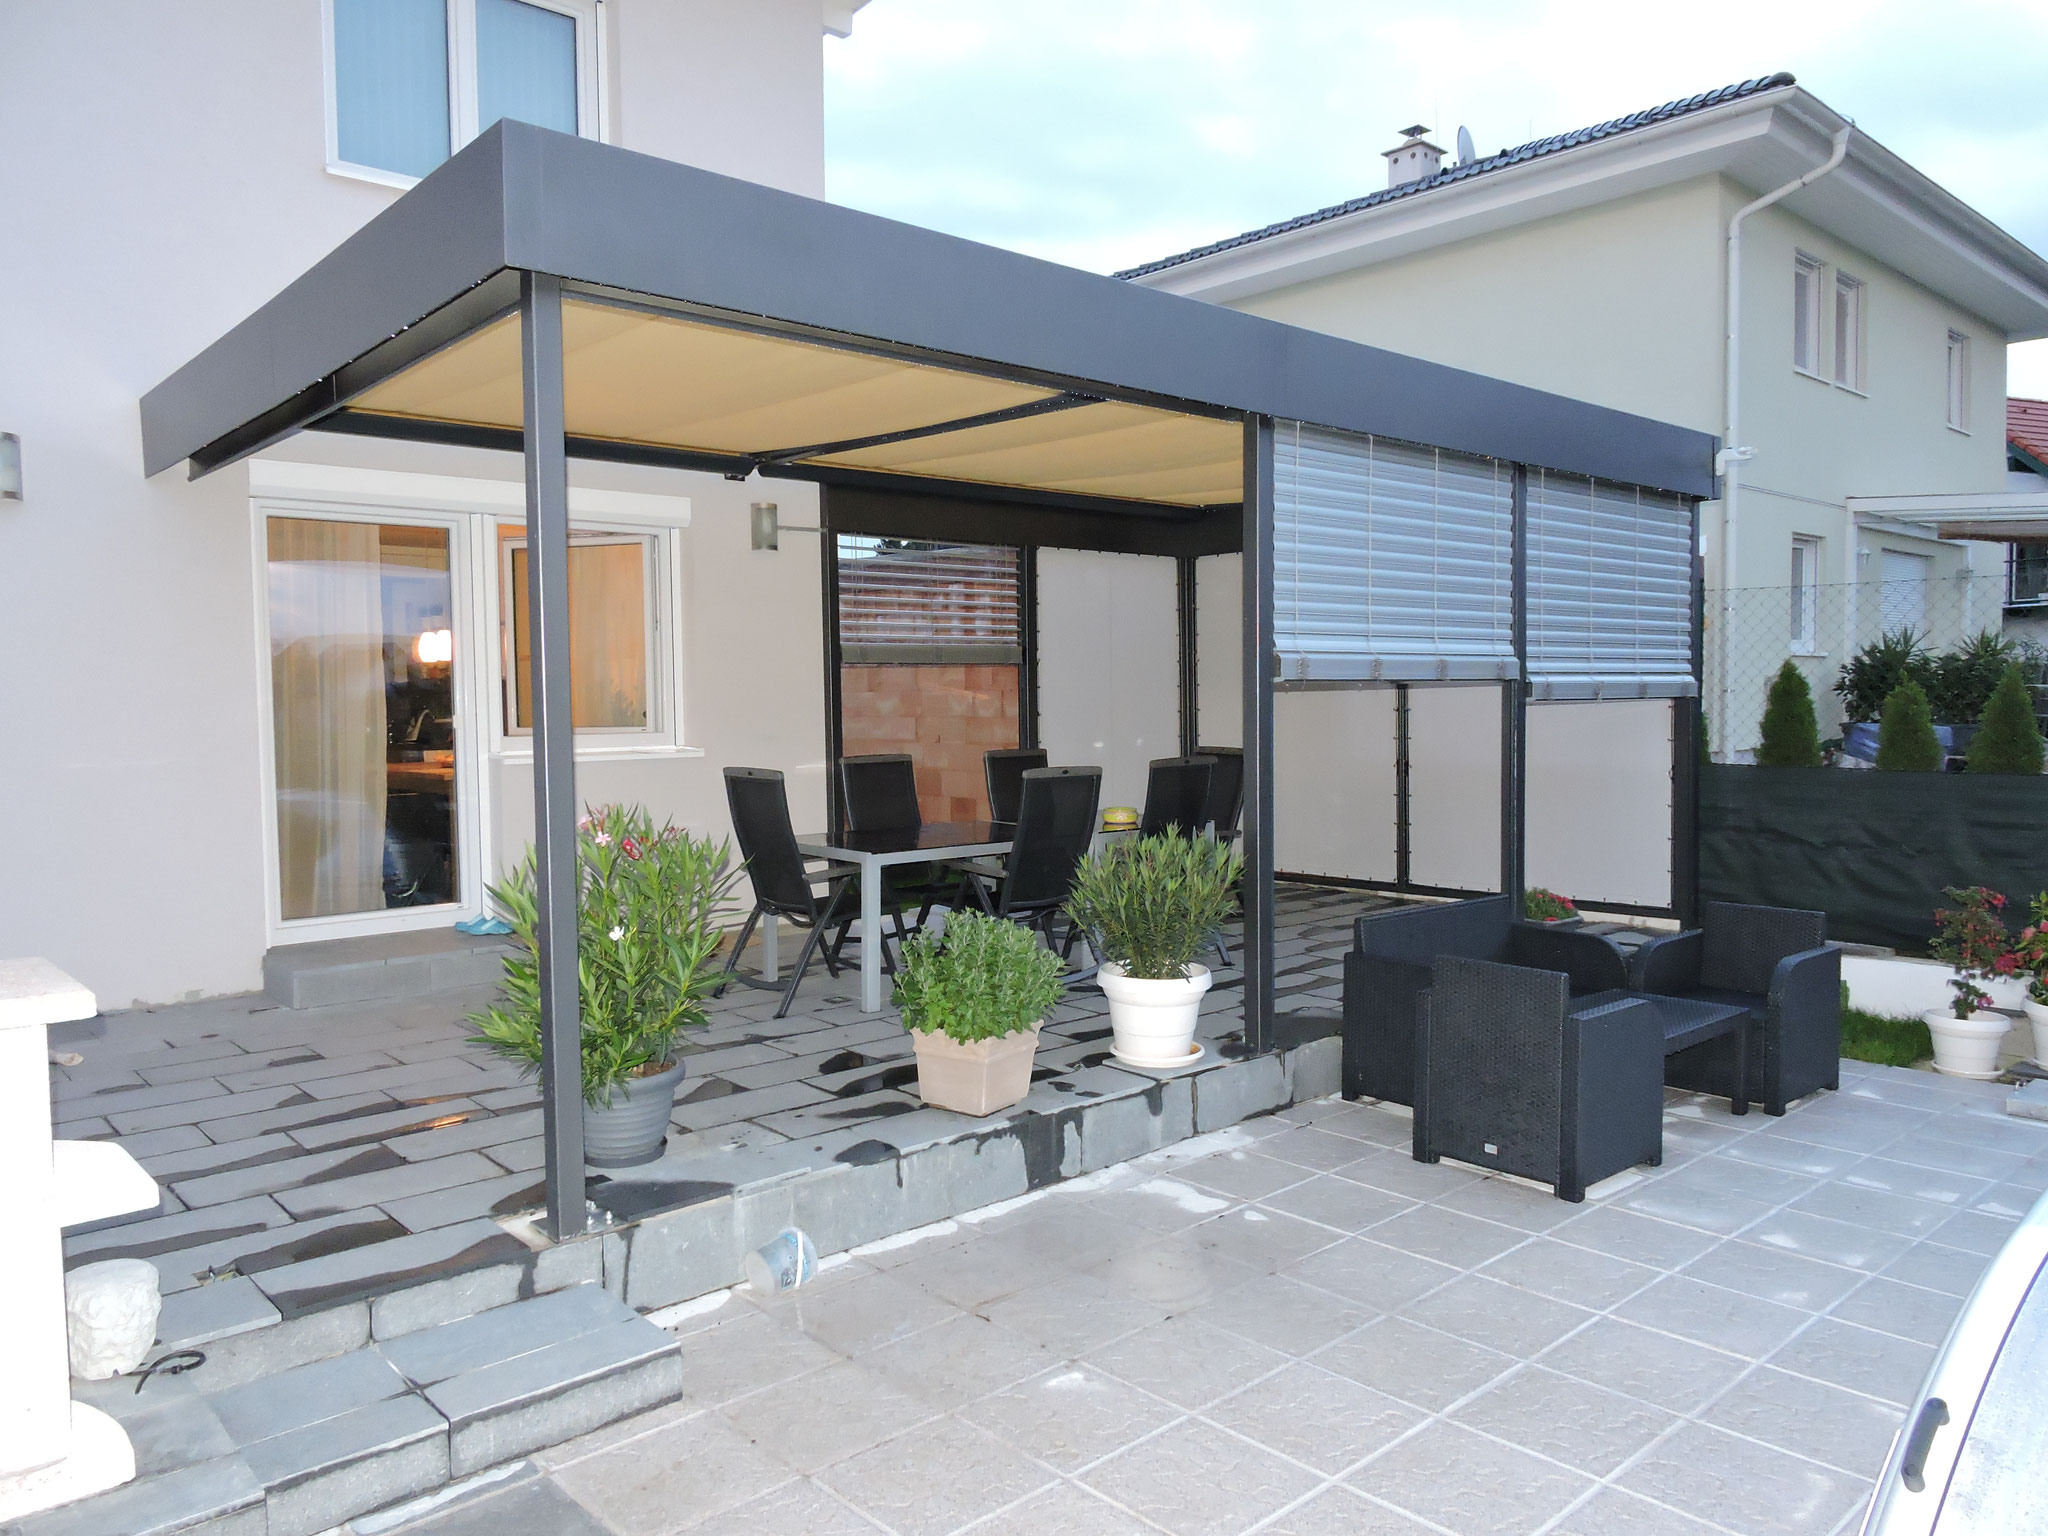 screenroom pergola sterreich oder pergo line mit stoff beschattung sowie faltd cher screenroom. Black Bedroom Furniture Sets. Home Design Ideas